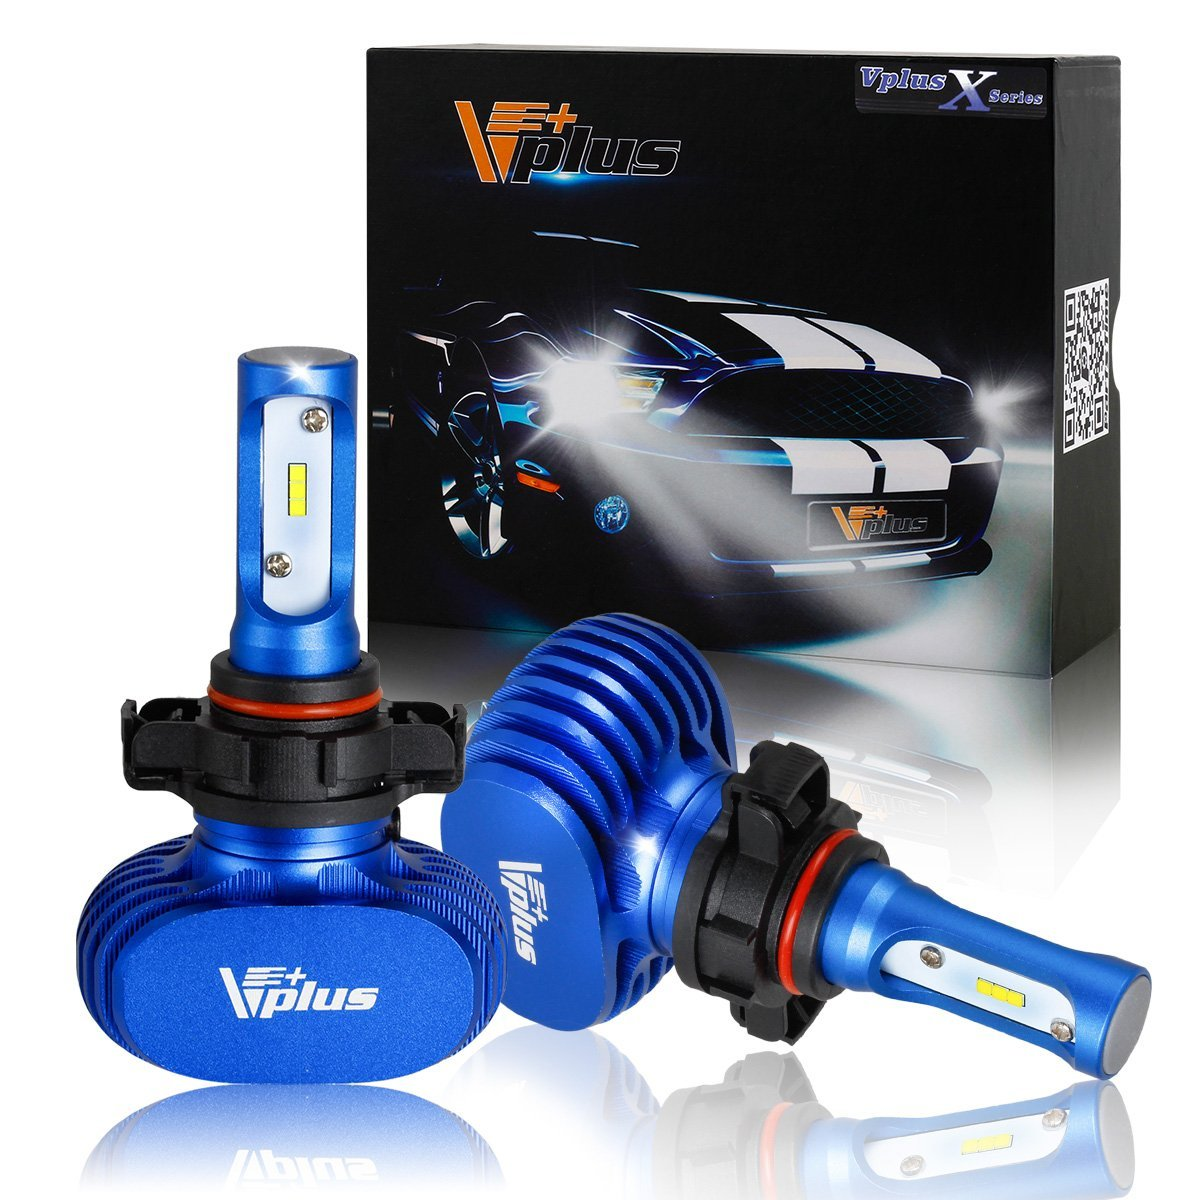 Vplus X Series LED Headlight Bulbs 5202 12086 PS24W H16 72W 8,000LM 6500K White Seoul Chip All in One No ballast Headlamps LED Conversion Replace HID & Halogen -(2pcs/set)